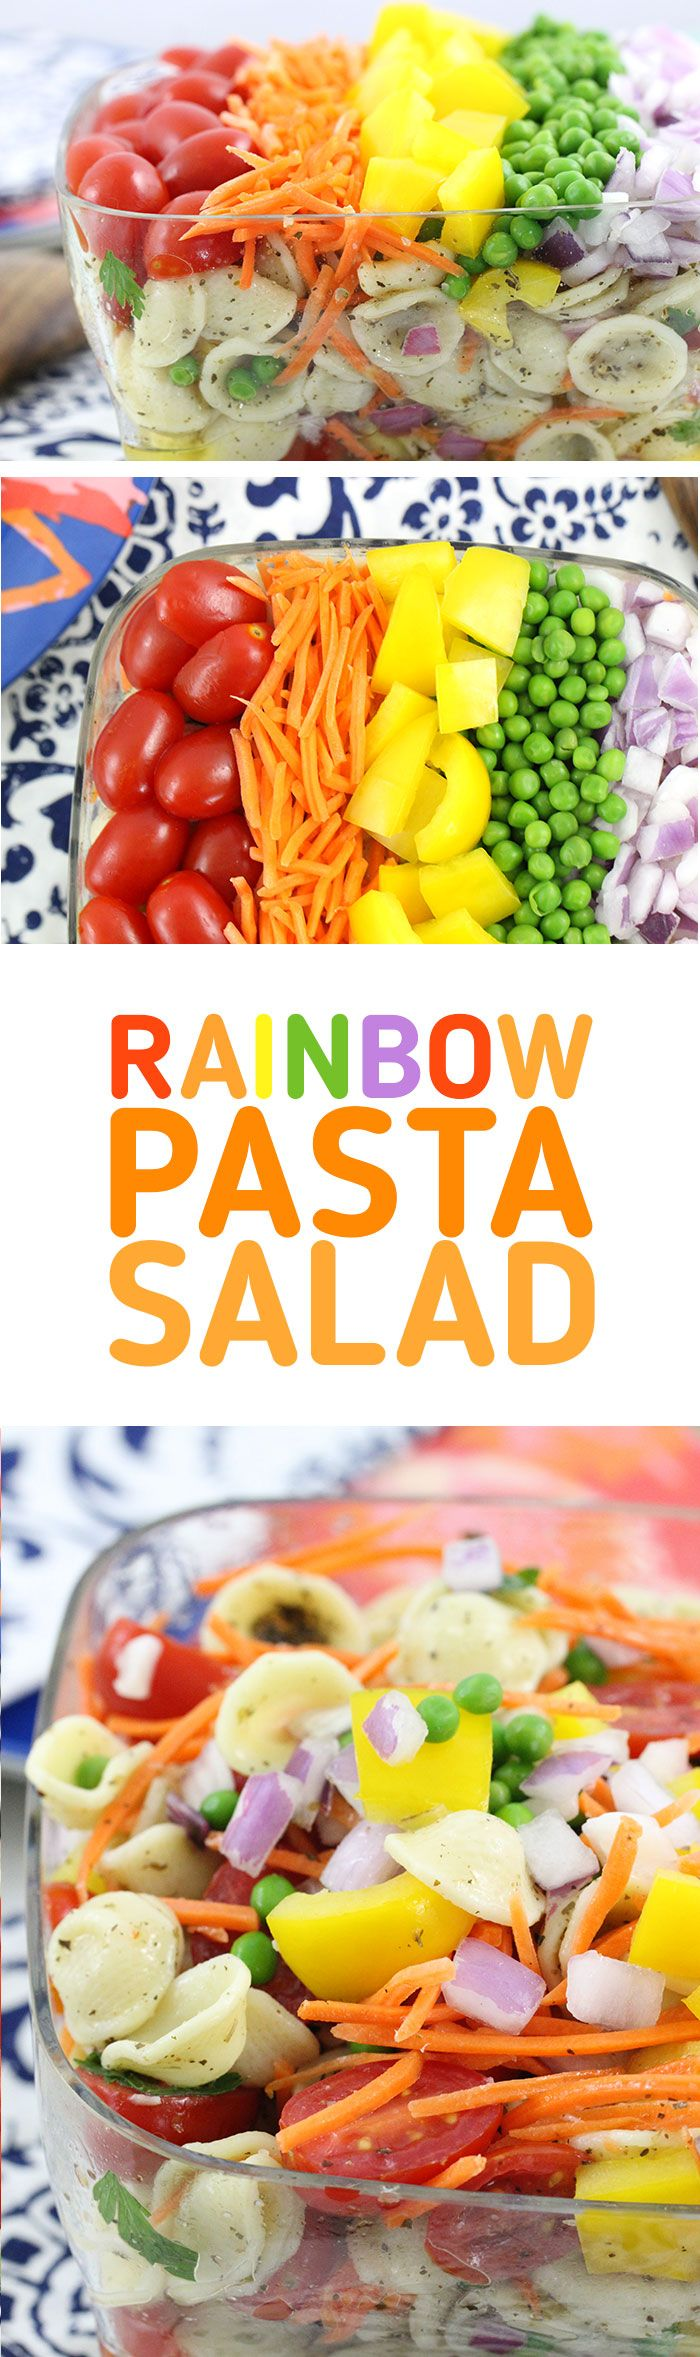 Rainbow Pasta Salad that's SO easy to make. Crowd Pleaser with colorful fresh veggies. Make extra pretty and delish with #HemisFares Orecchiette pasta. #ad